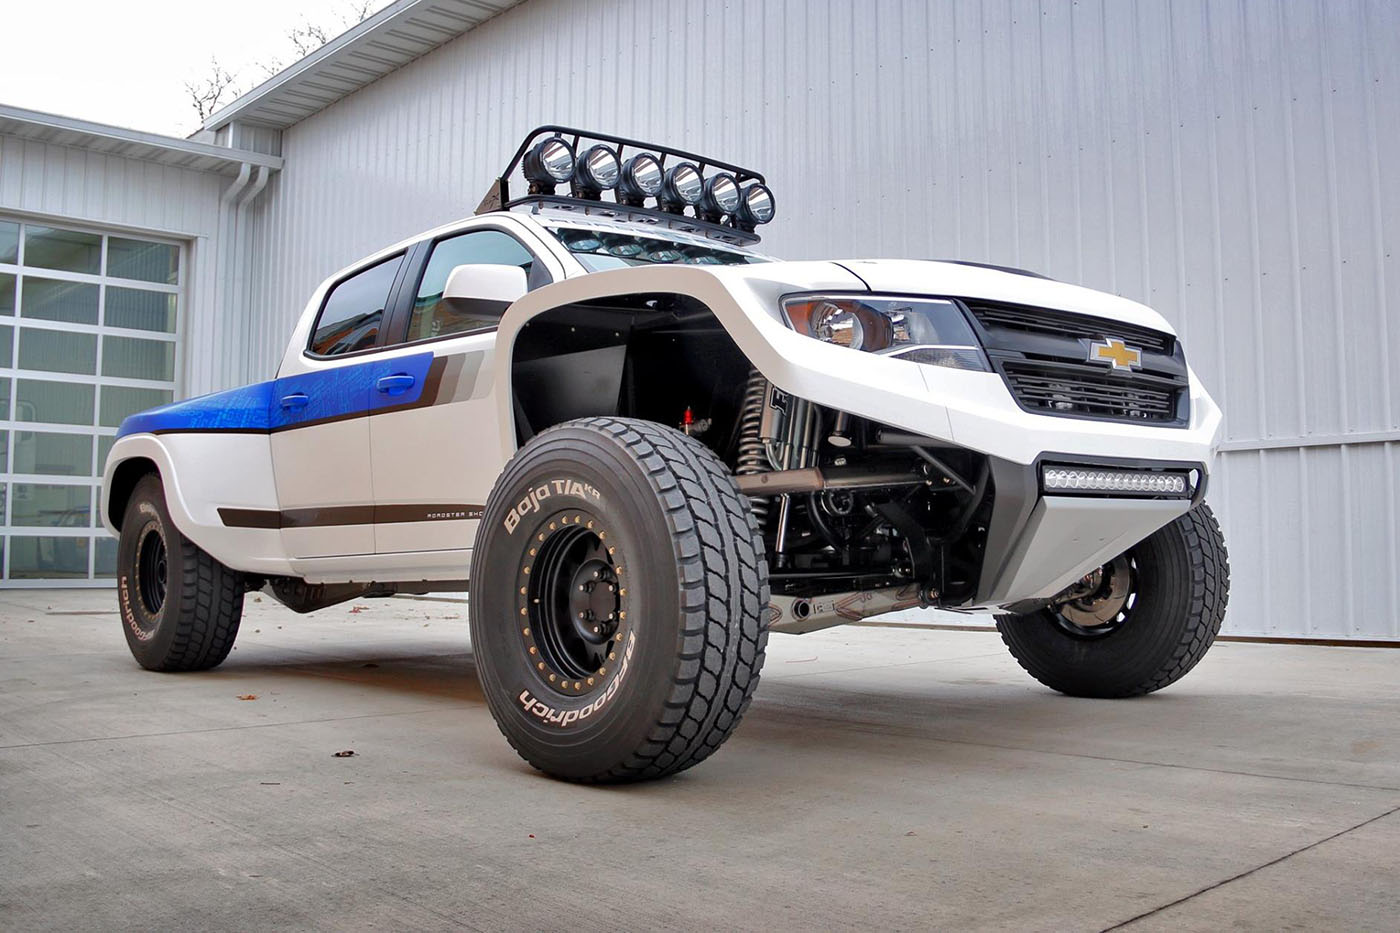 2015 Chevy Colorado With A Ls7 Engine Swap Depot Wiring Harness